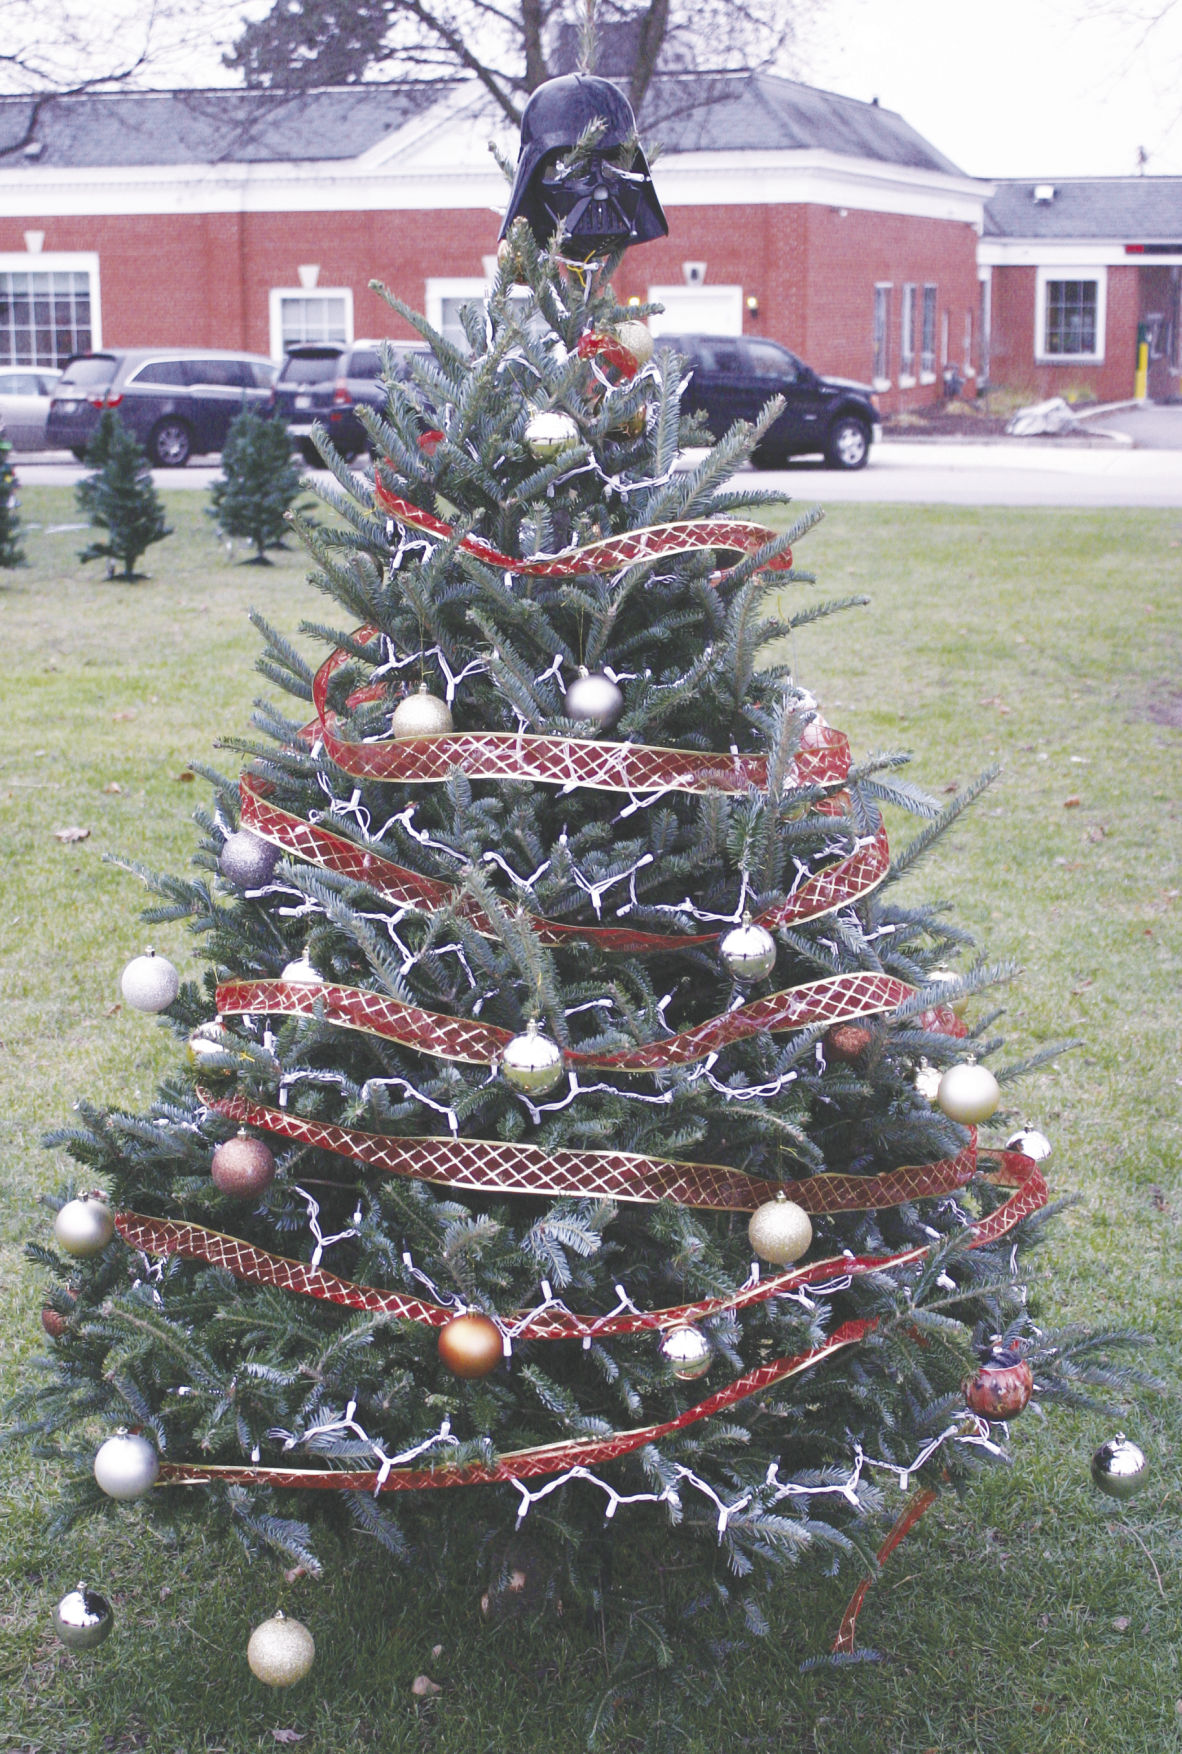 Cambridge trees were decorated by volunteers for the Christmas event that included horsedrawn hayrides, caroling, strolling madrigals, and a traditional tree lighting.